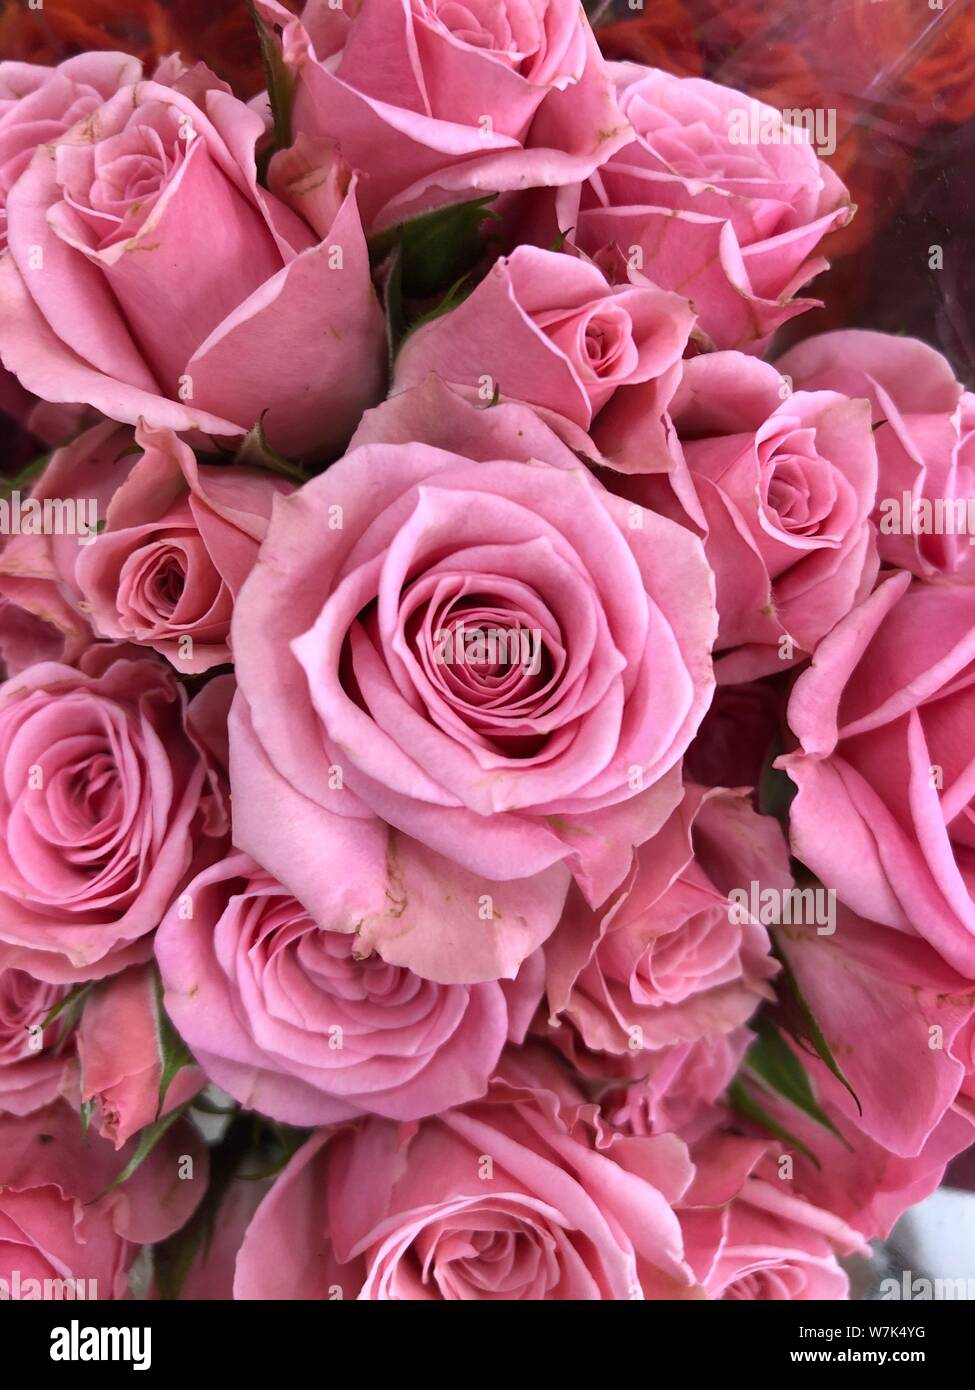 Pink Roses Background Beautiful Flowers Wallpaper Crop Image For Design Stock Photo Alamy